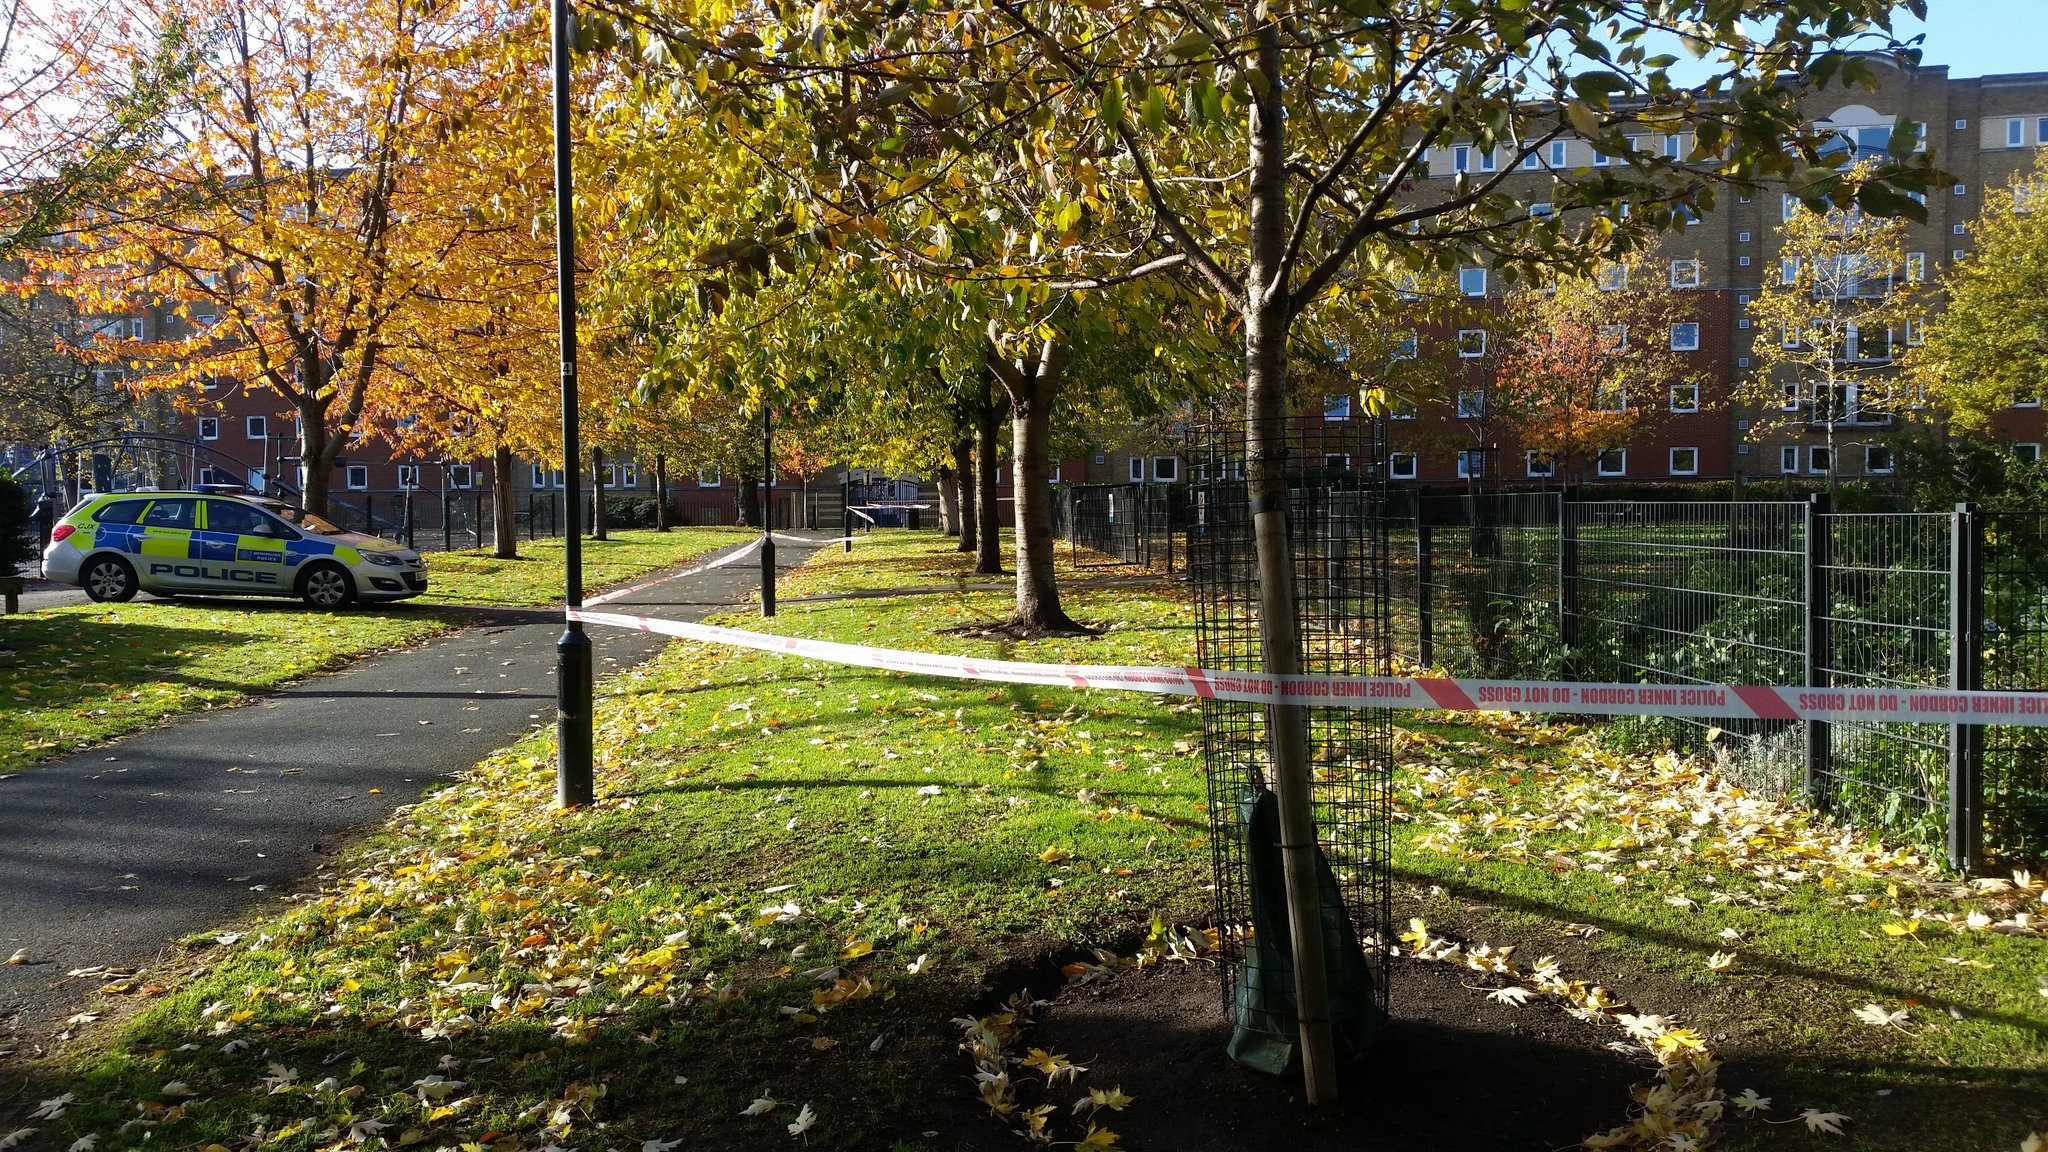 Police investigating 'serious sexual assault' in Tabard Gardens